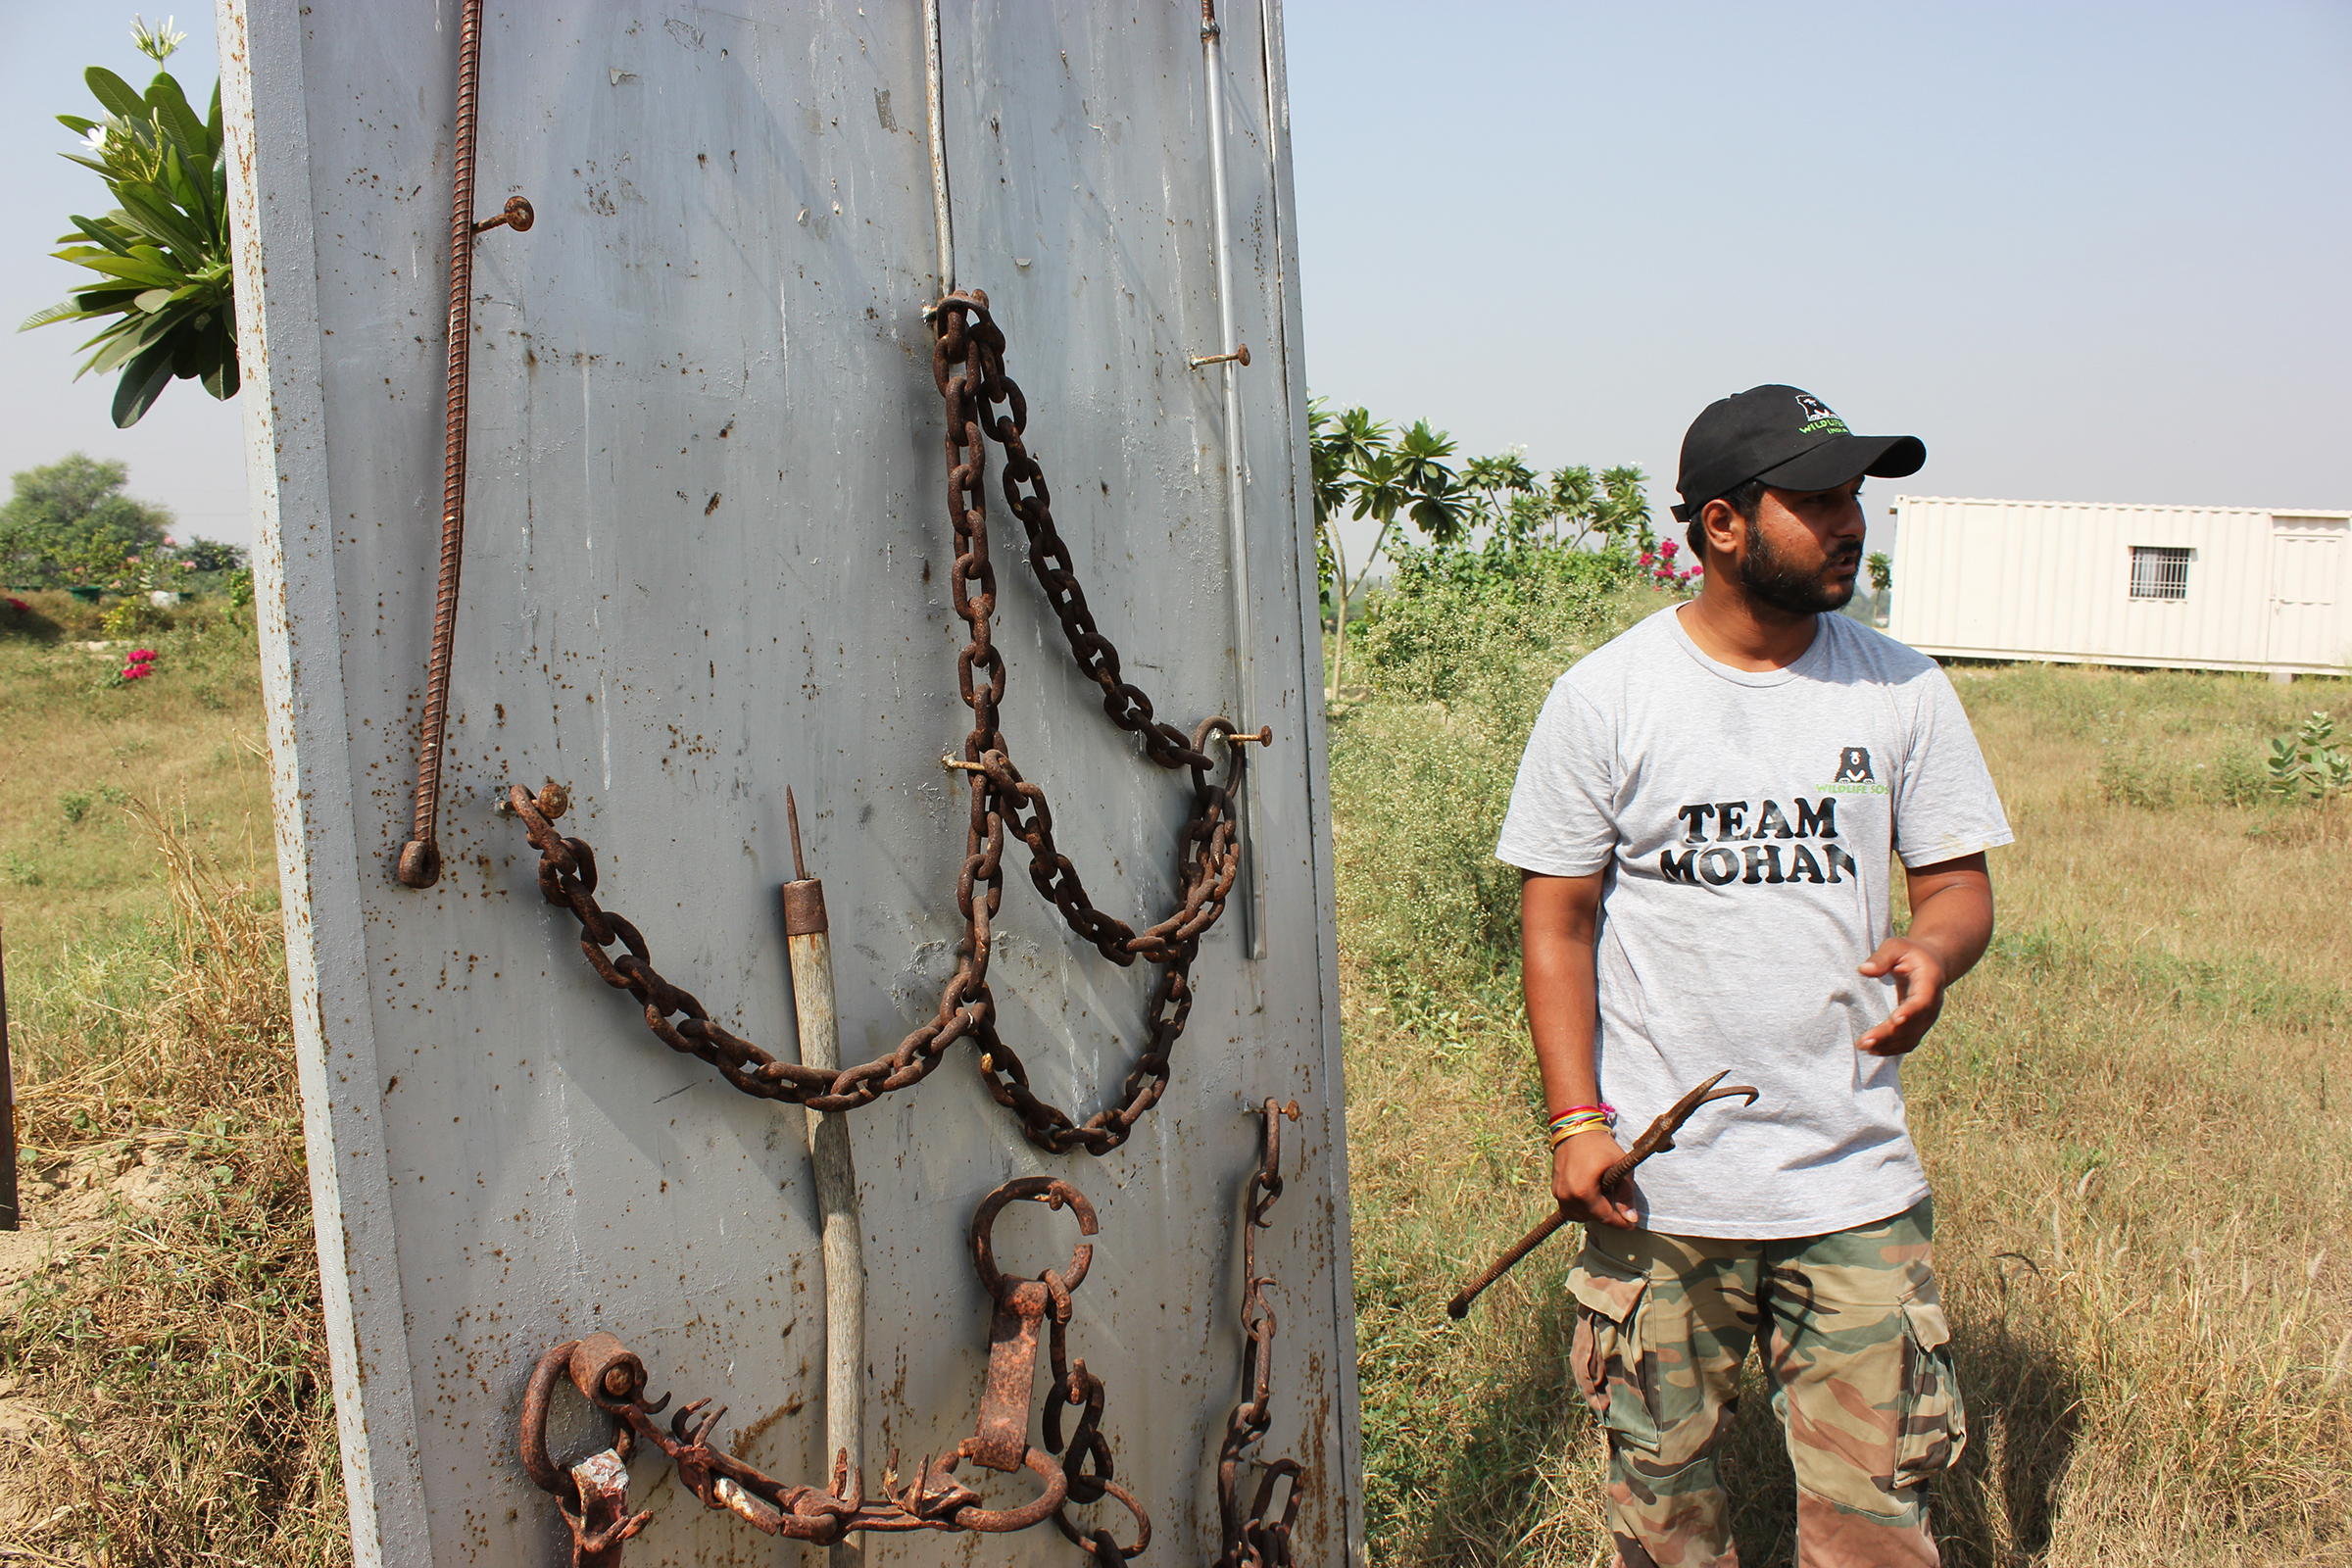 This is Hari Singh, Education Officer at Wildlife SOS, showing us the torturous bullhooks and chains used on the elephants prior to being rescued. Hari left an aeronautical engineering career to come to Wildlife SOS and work with the elephants. He told me that the personal satisfaction that he gets from his work with Wildlife SOS far surpasses what he was doing before.